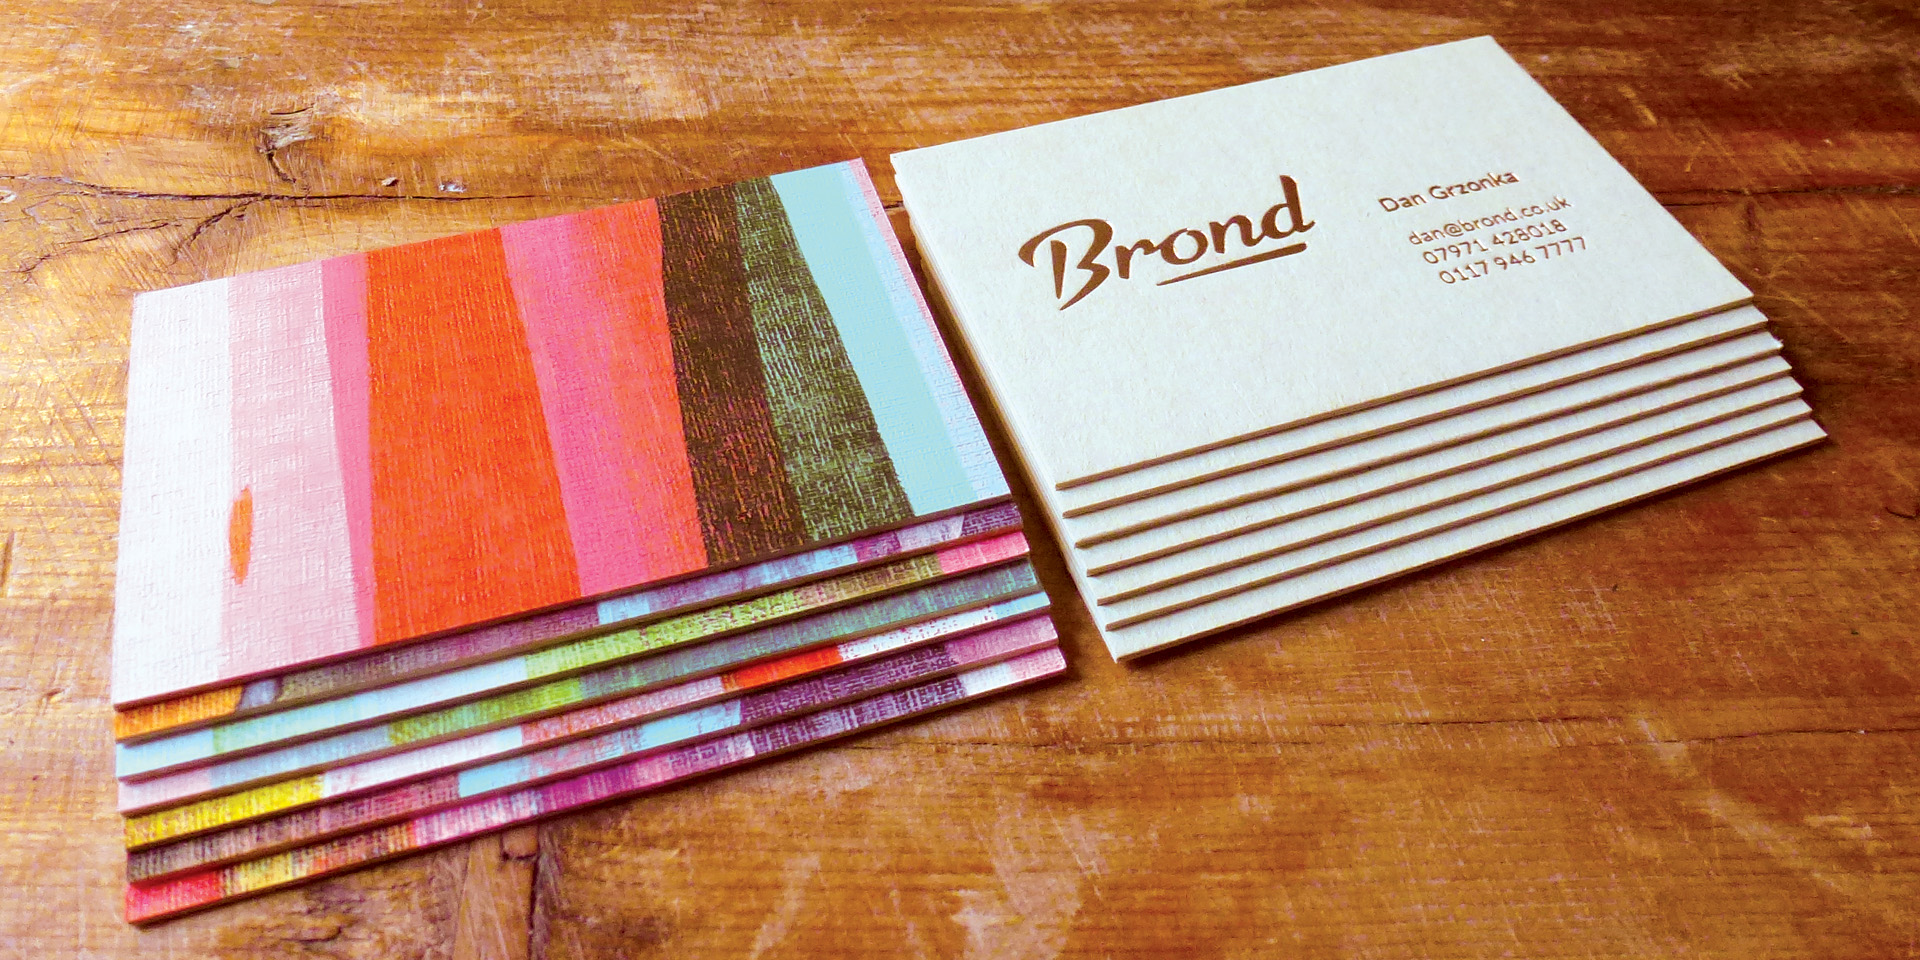 B009-2407-Brond-Business-Card-Wide-3.jpg